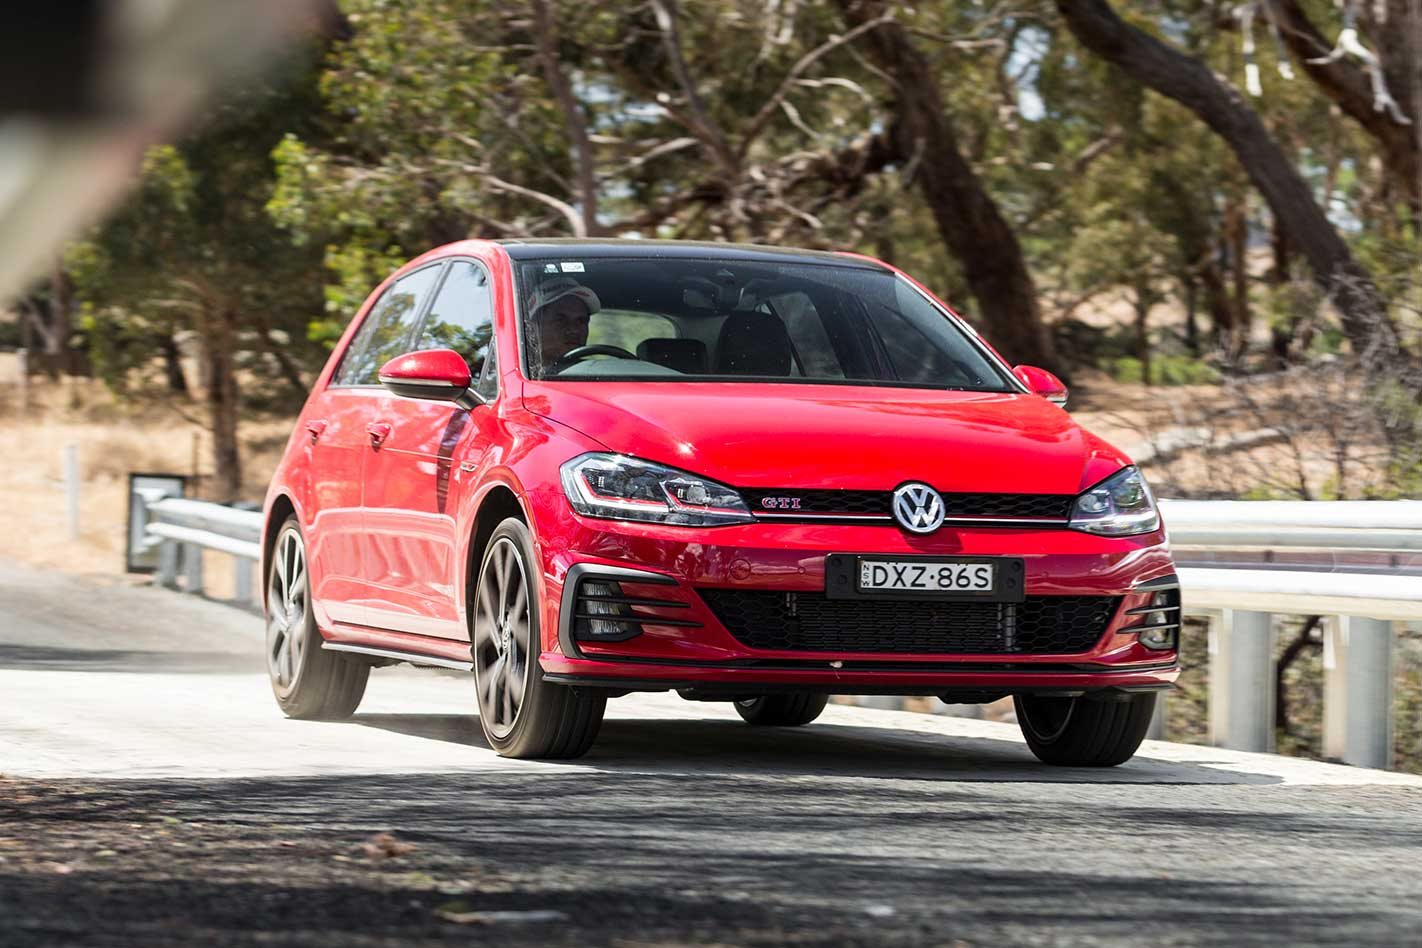 2019 volkswagen golf gti review motor. Black Bedroom Furniture Sets. Home Design Ideas